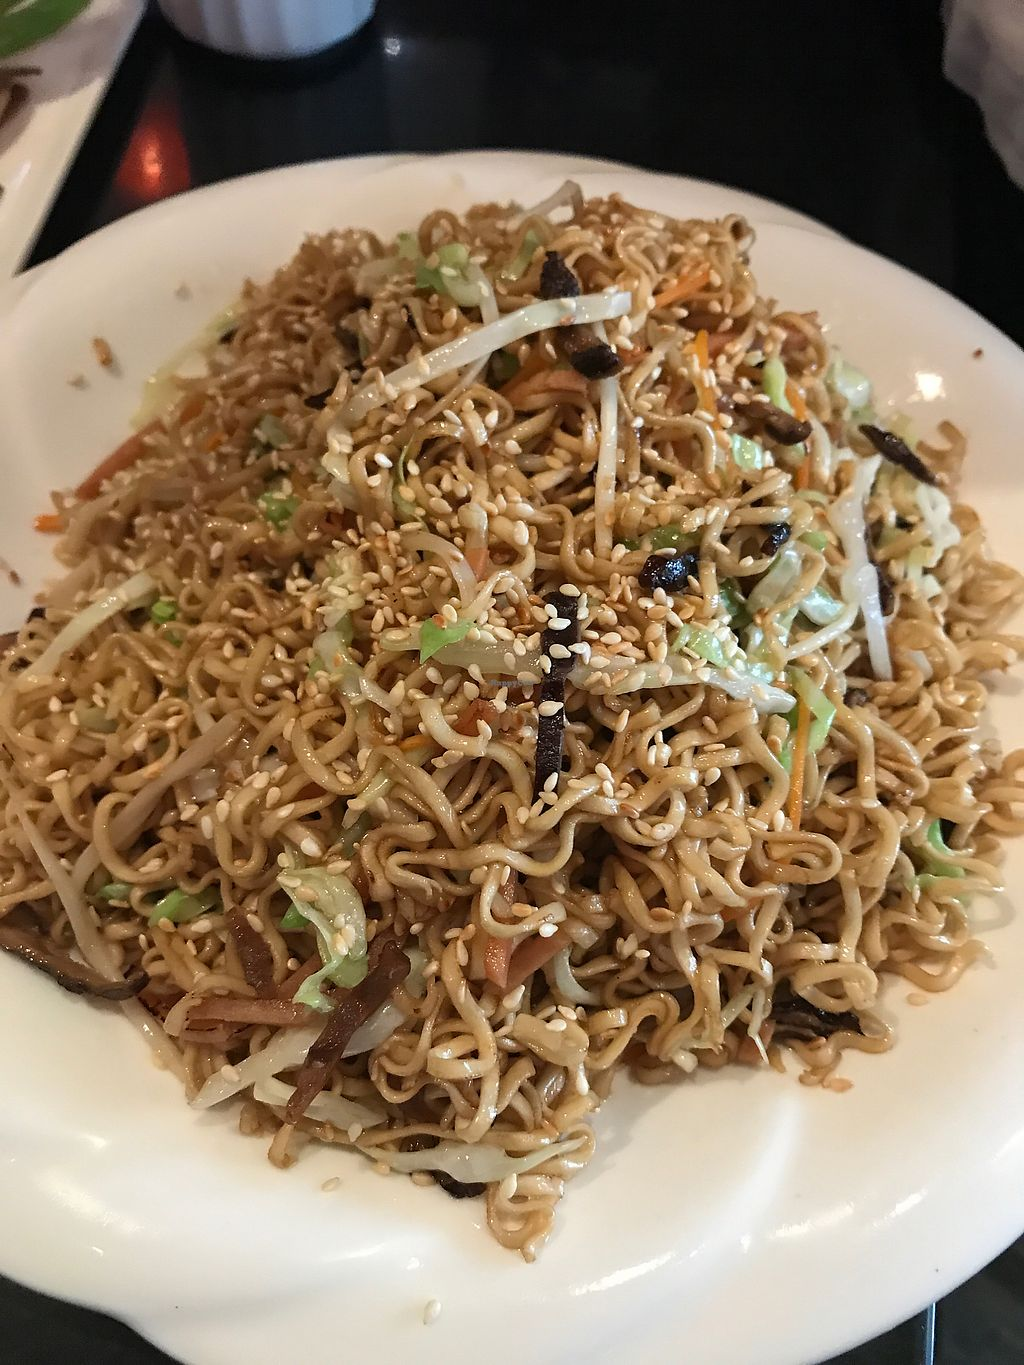 """Photo of Shan Ding Dong Ren - Caveman Vegetarian Teahouse  by <a href=""""/members/profile/VeganRambo"""">VeganRambo</a> <br/>Very tasty noodles, definite try it <br/> July 19, 2017  - <a href='/contact/abuse/image/18363/281996'>Report</a>"""